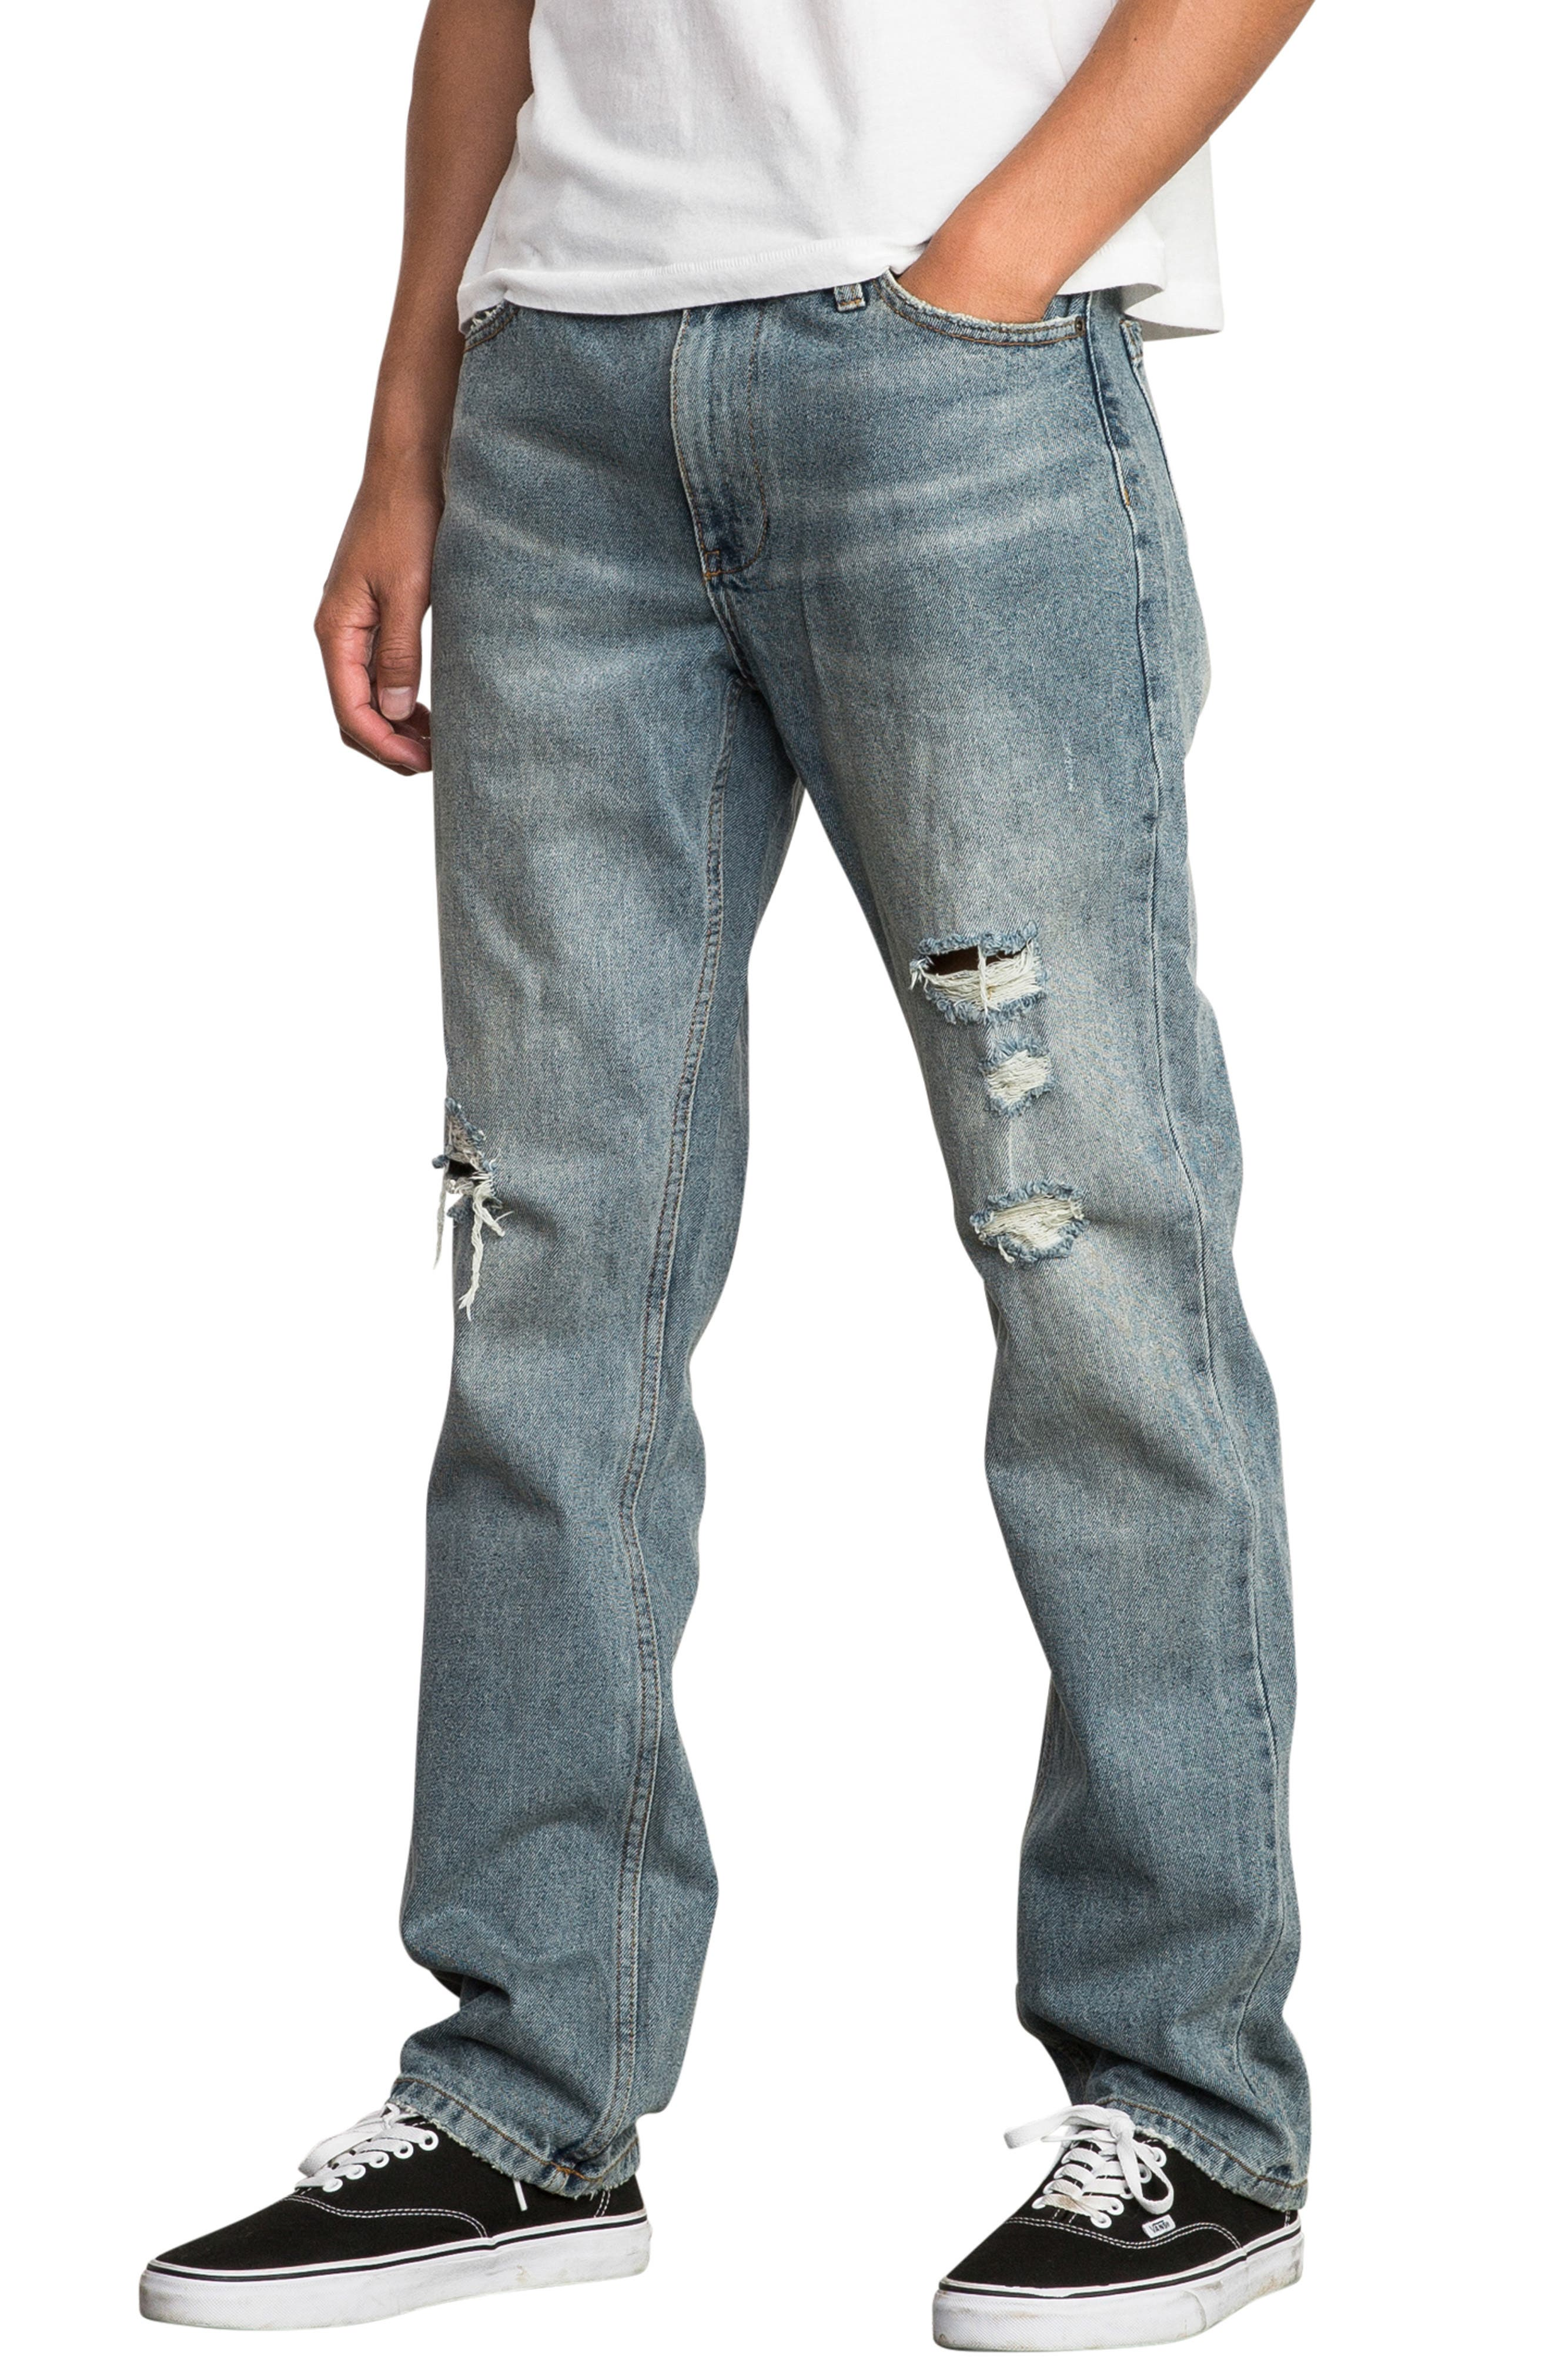 Stay RVCA Slim Fit Jeans,                             Alternate thumbnail 3, color,                             WORN BLUE